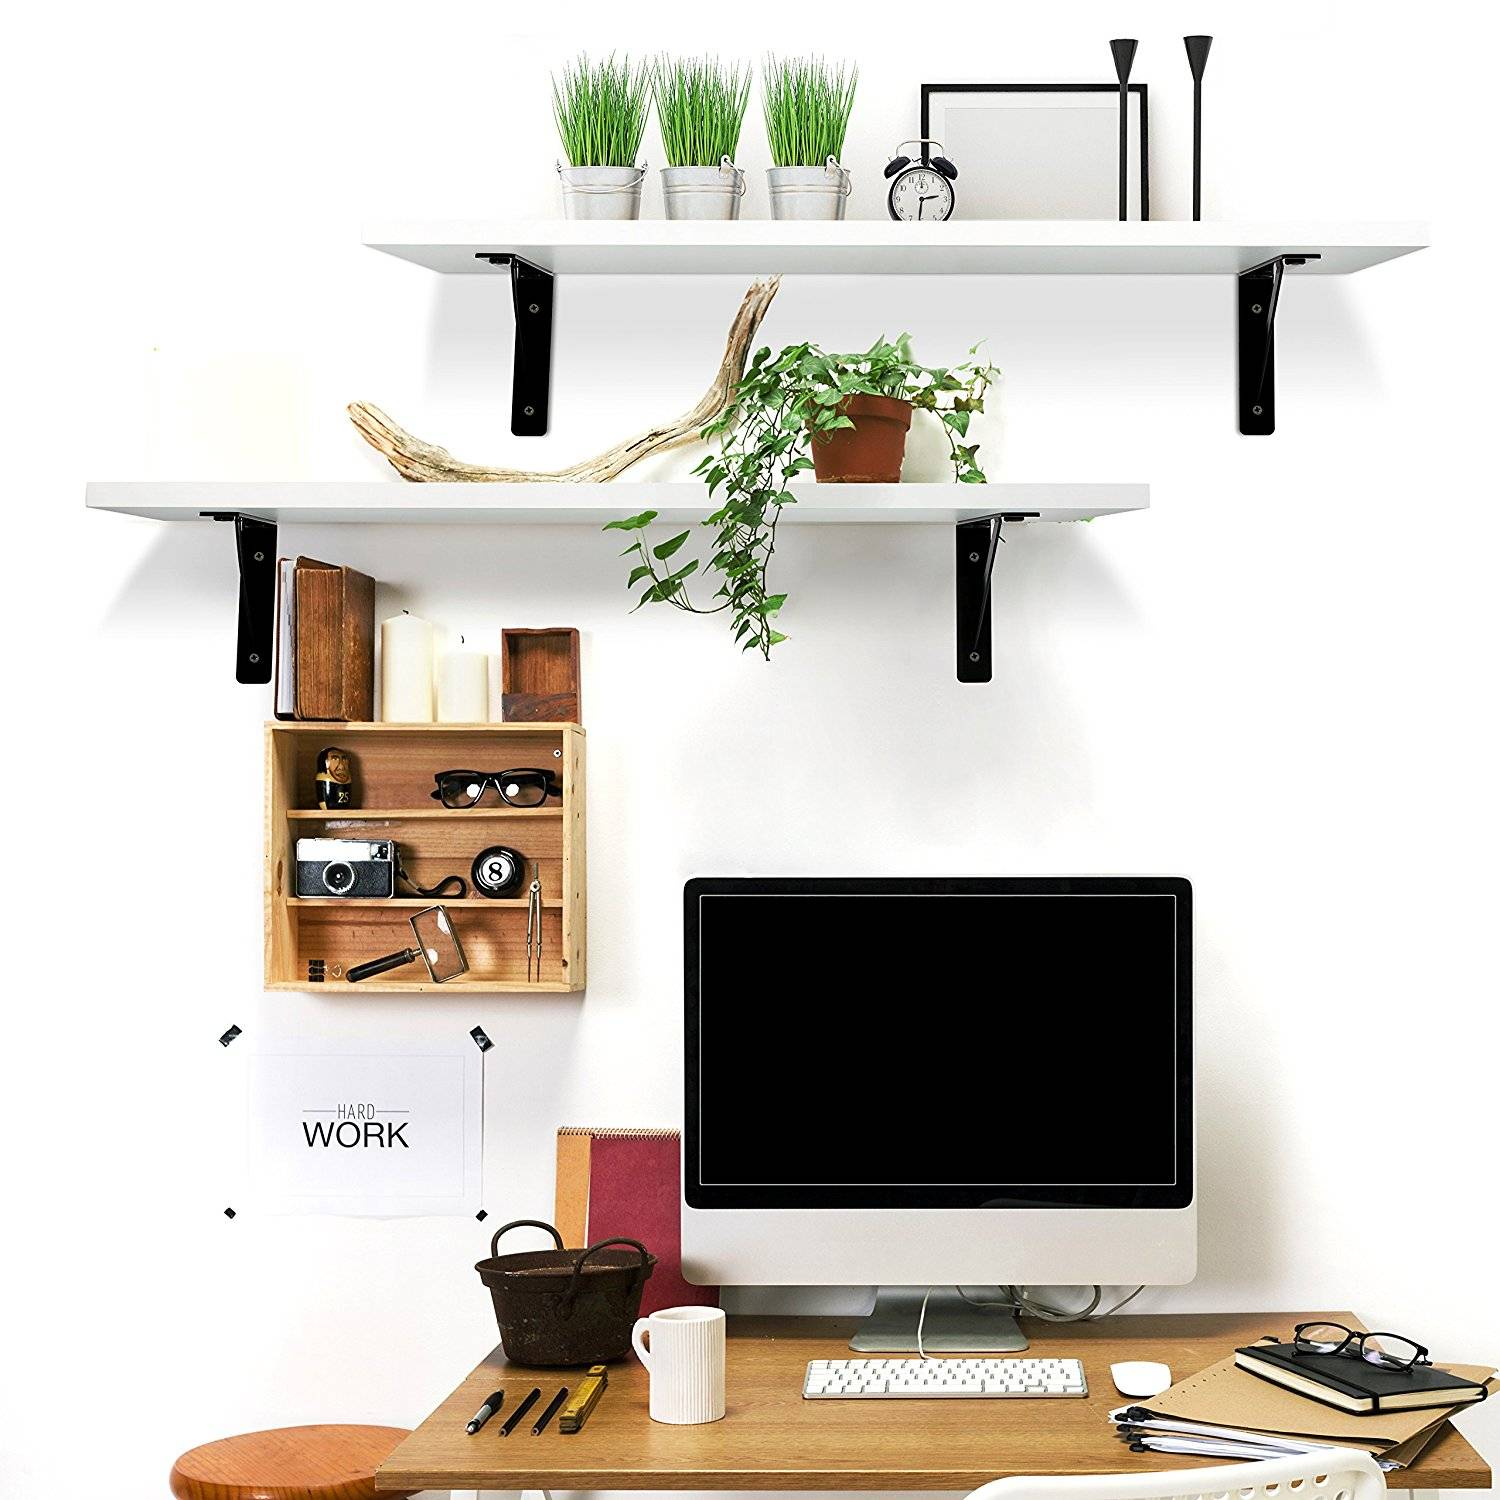 Set Of 2 Wall Mount Floating Shelves Display Storage Wood